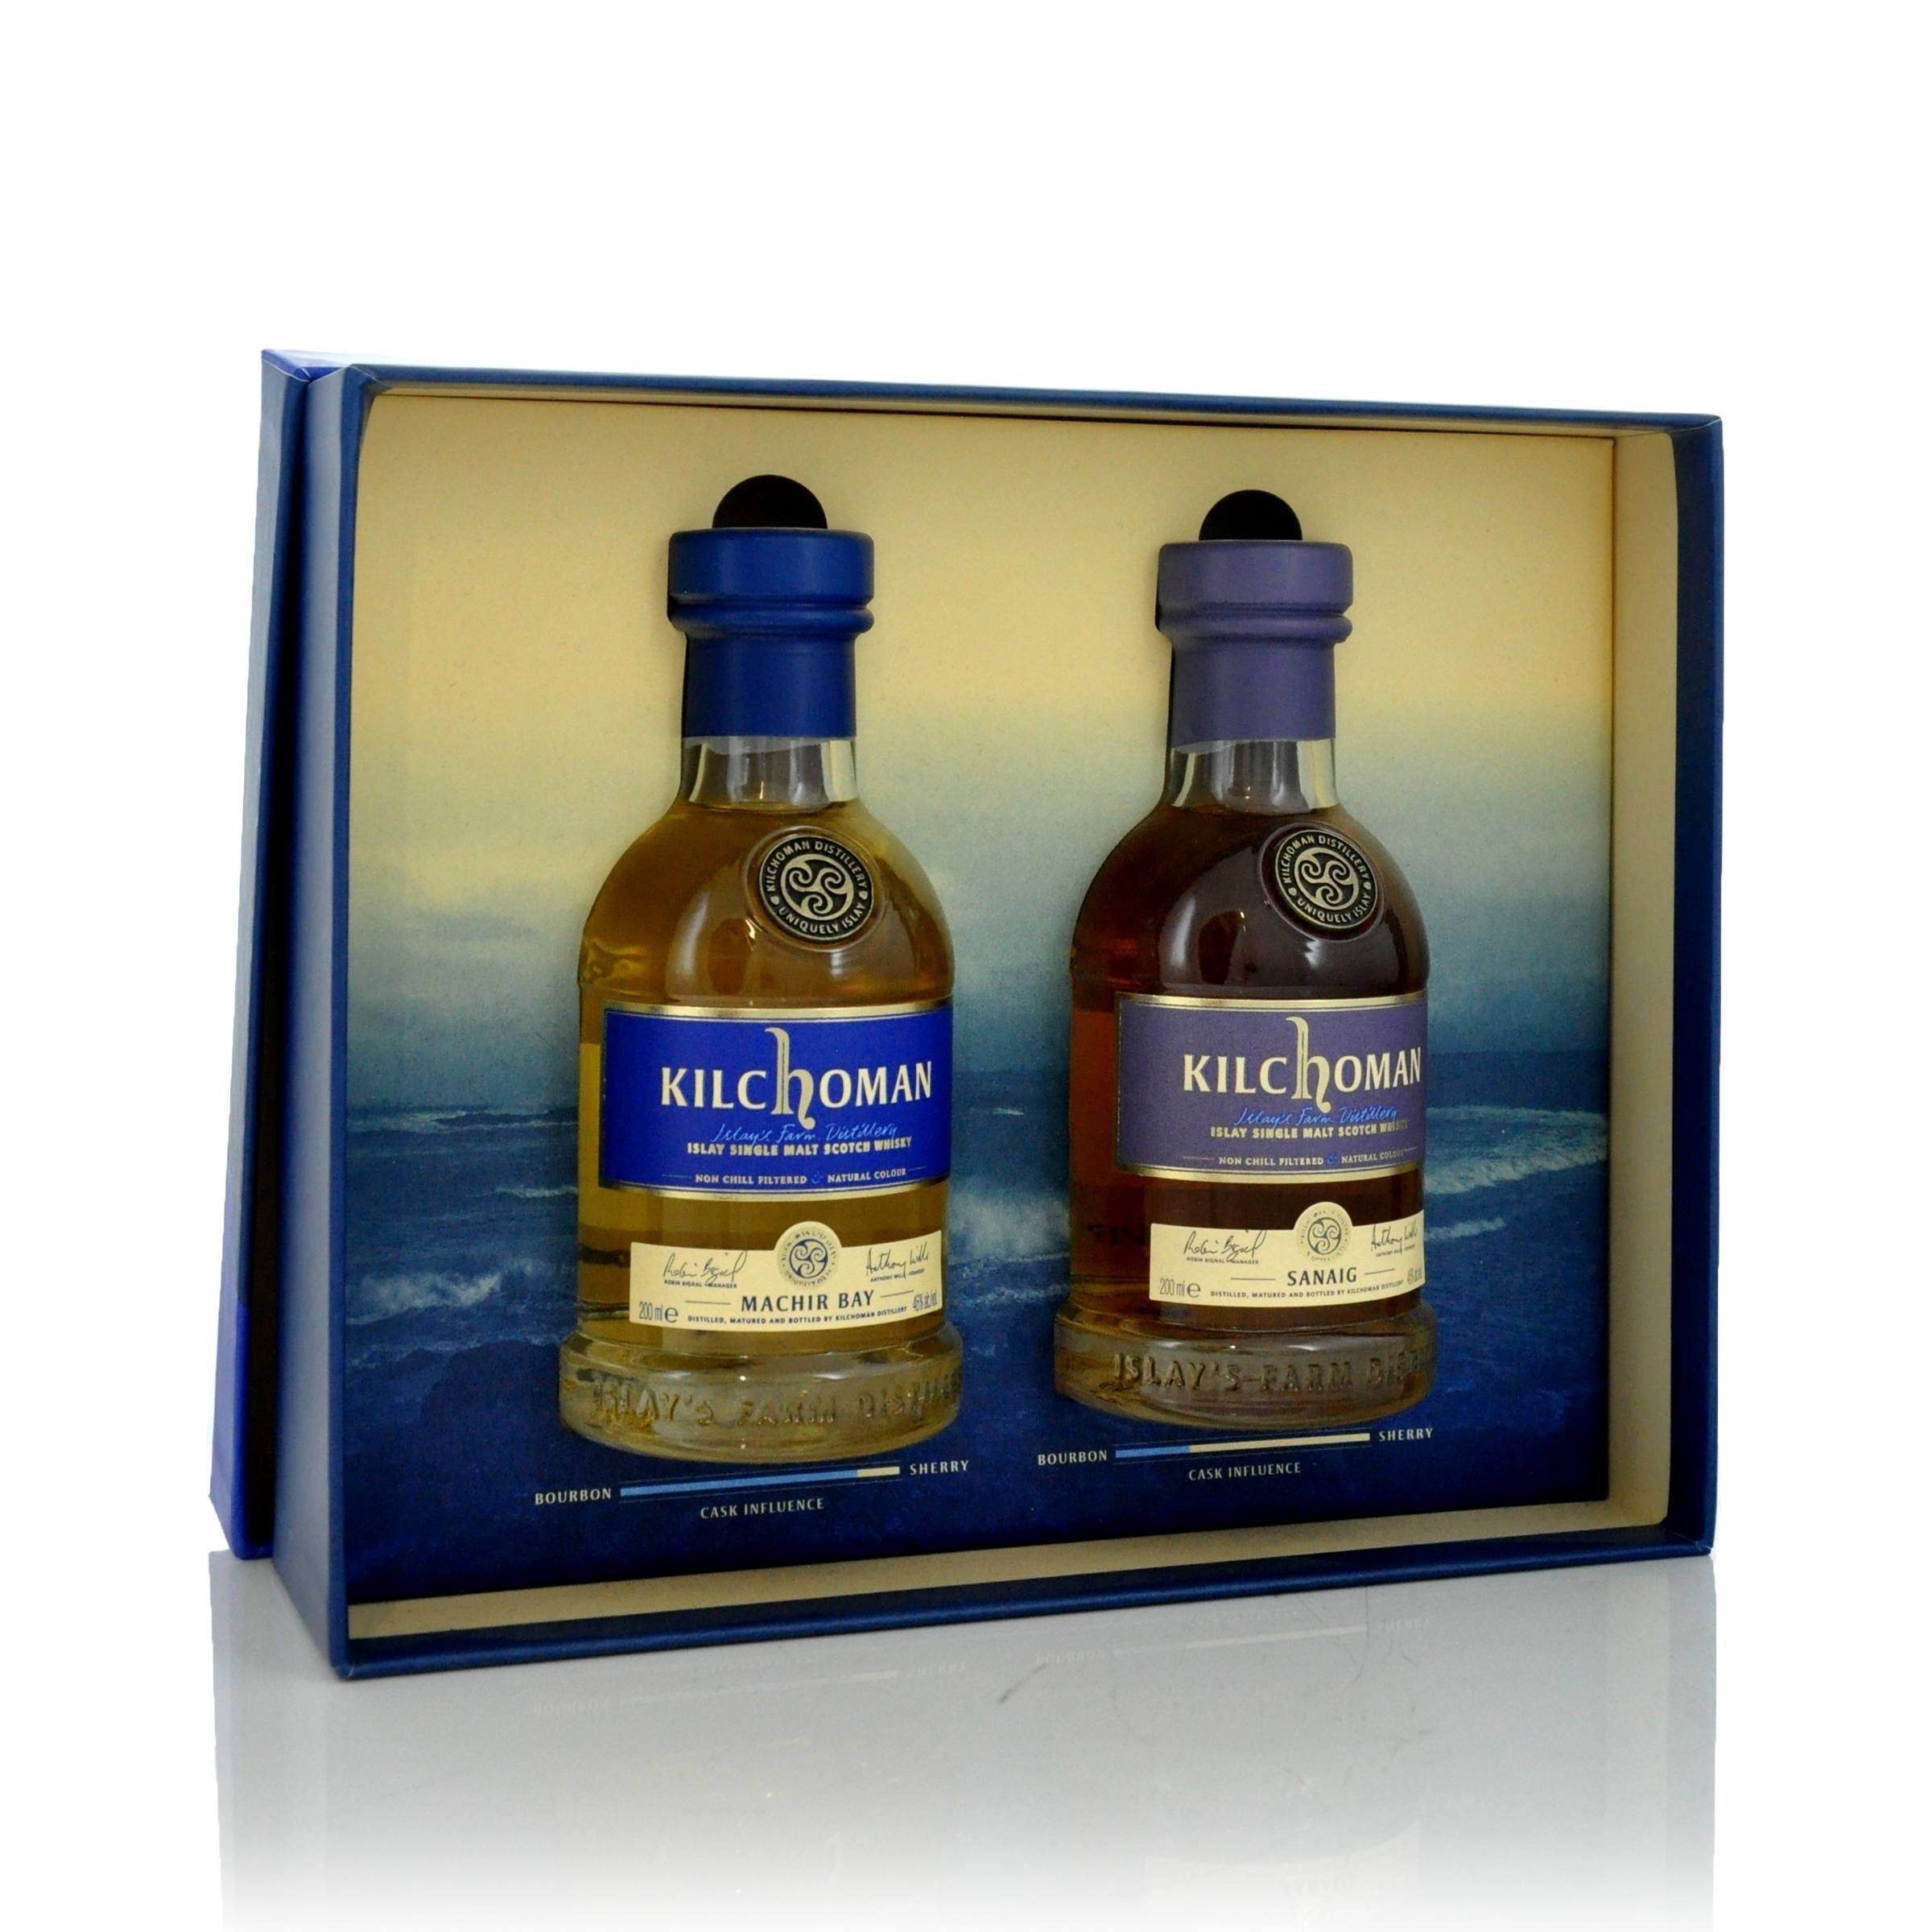 Kilchoman 20cl Twin Gift Set - Click to view a larger image